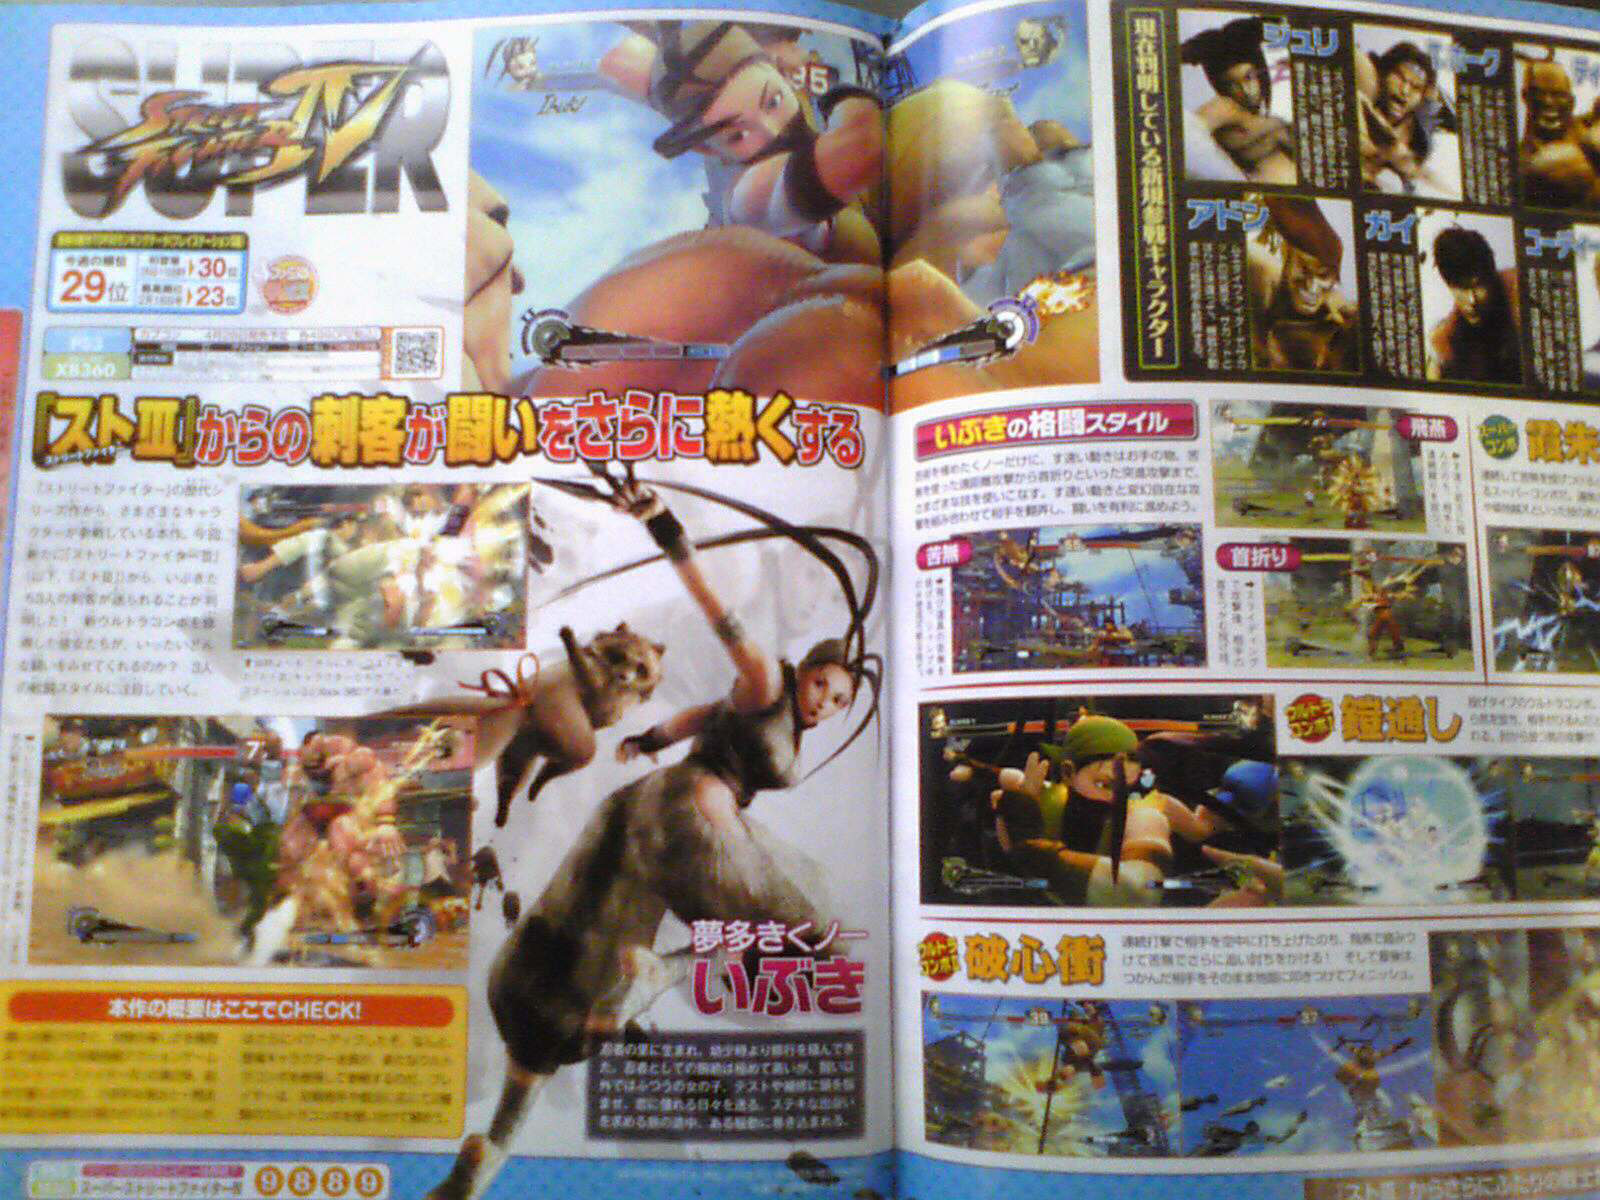 Famitsu scan showing Ibuki, Makoto and Dudley in Super Street Fighter 4